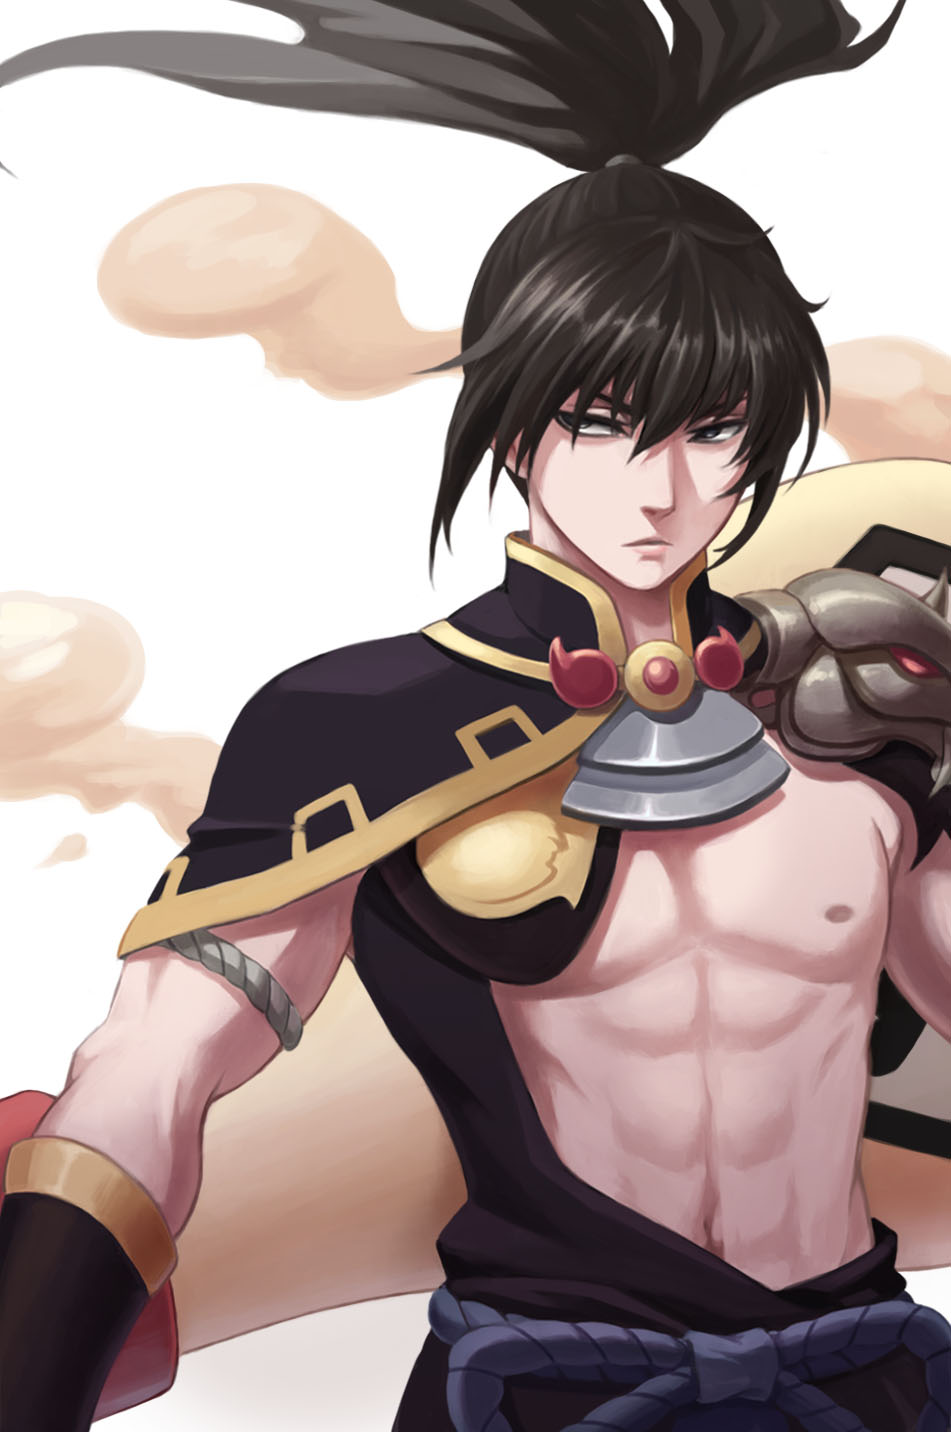 1boy abs bangs bei_ju_luoxuan_wan black_eyes black_hair chest closed_mouth cosplay cosplay_request floating_hair gintama highres hijikata_toushirou japanese_clothes lips long_hair looking_to_the_side magatama male_focus muscle navel nipples onmyoji pauldrons ponytail rope sash simple_background smoke solo stomach upper_body white_background